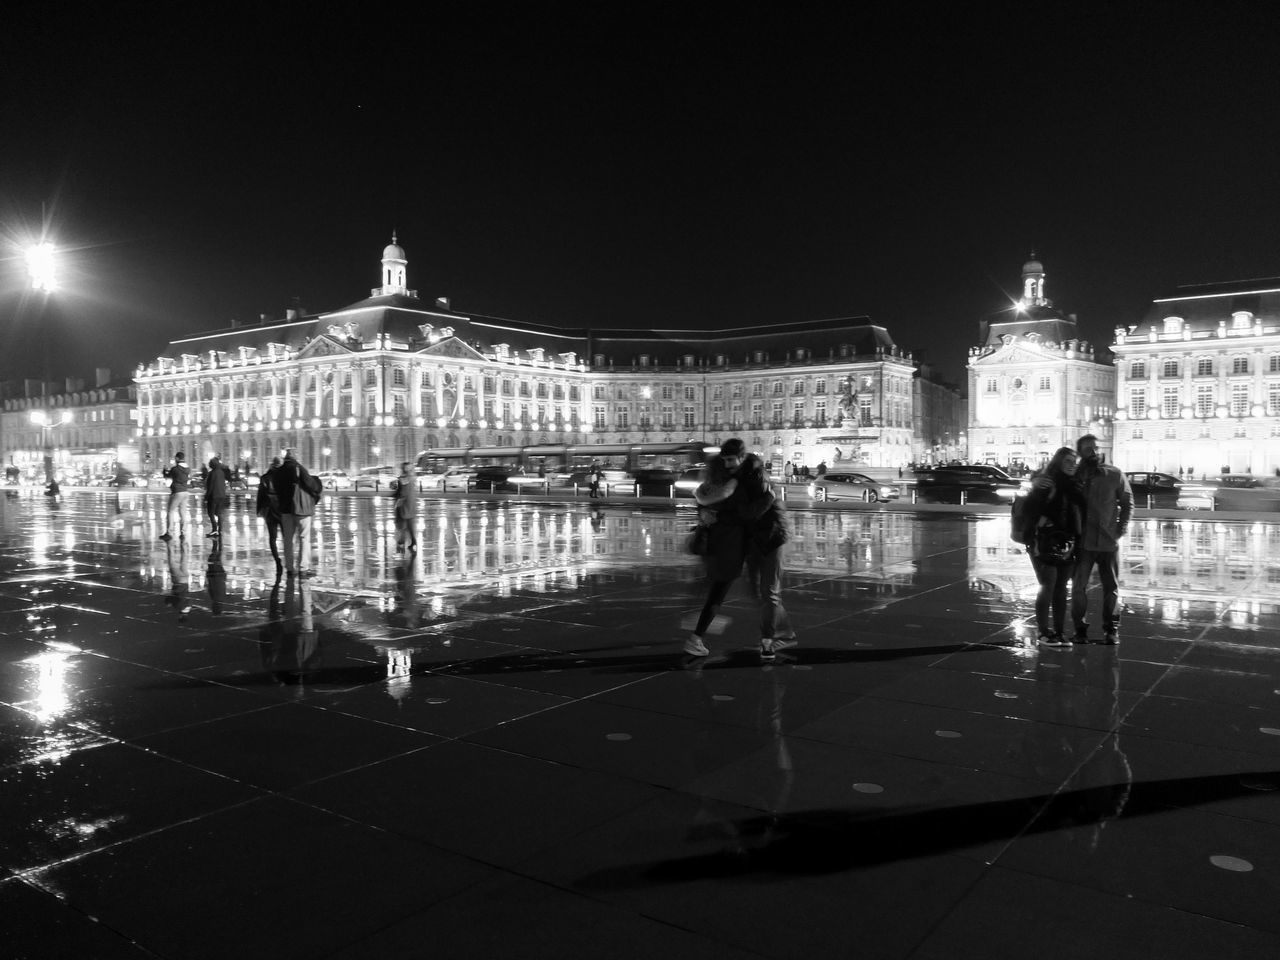 Miroir D'eau Place De La Bourse Bordeaux Adults Only Travel Travel Destinations People Real People Illuminated Leisure Activity Night Architecture Streetphotography Street Photography Streetphoto_bw TOWNSCAPE Cityscapes Cityscape Blackandwhite Black And White Bw Black & White Bnw Bw_collection Bnw_collection